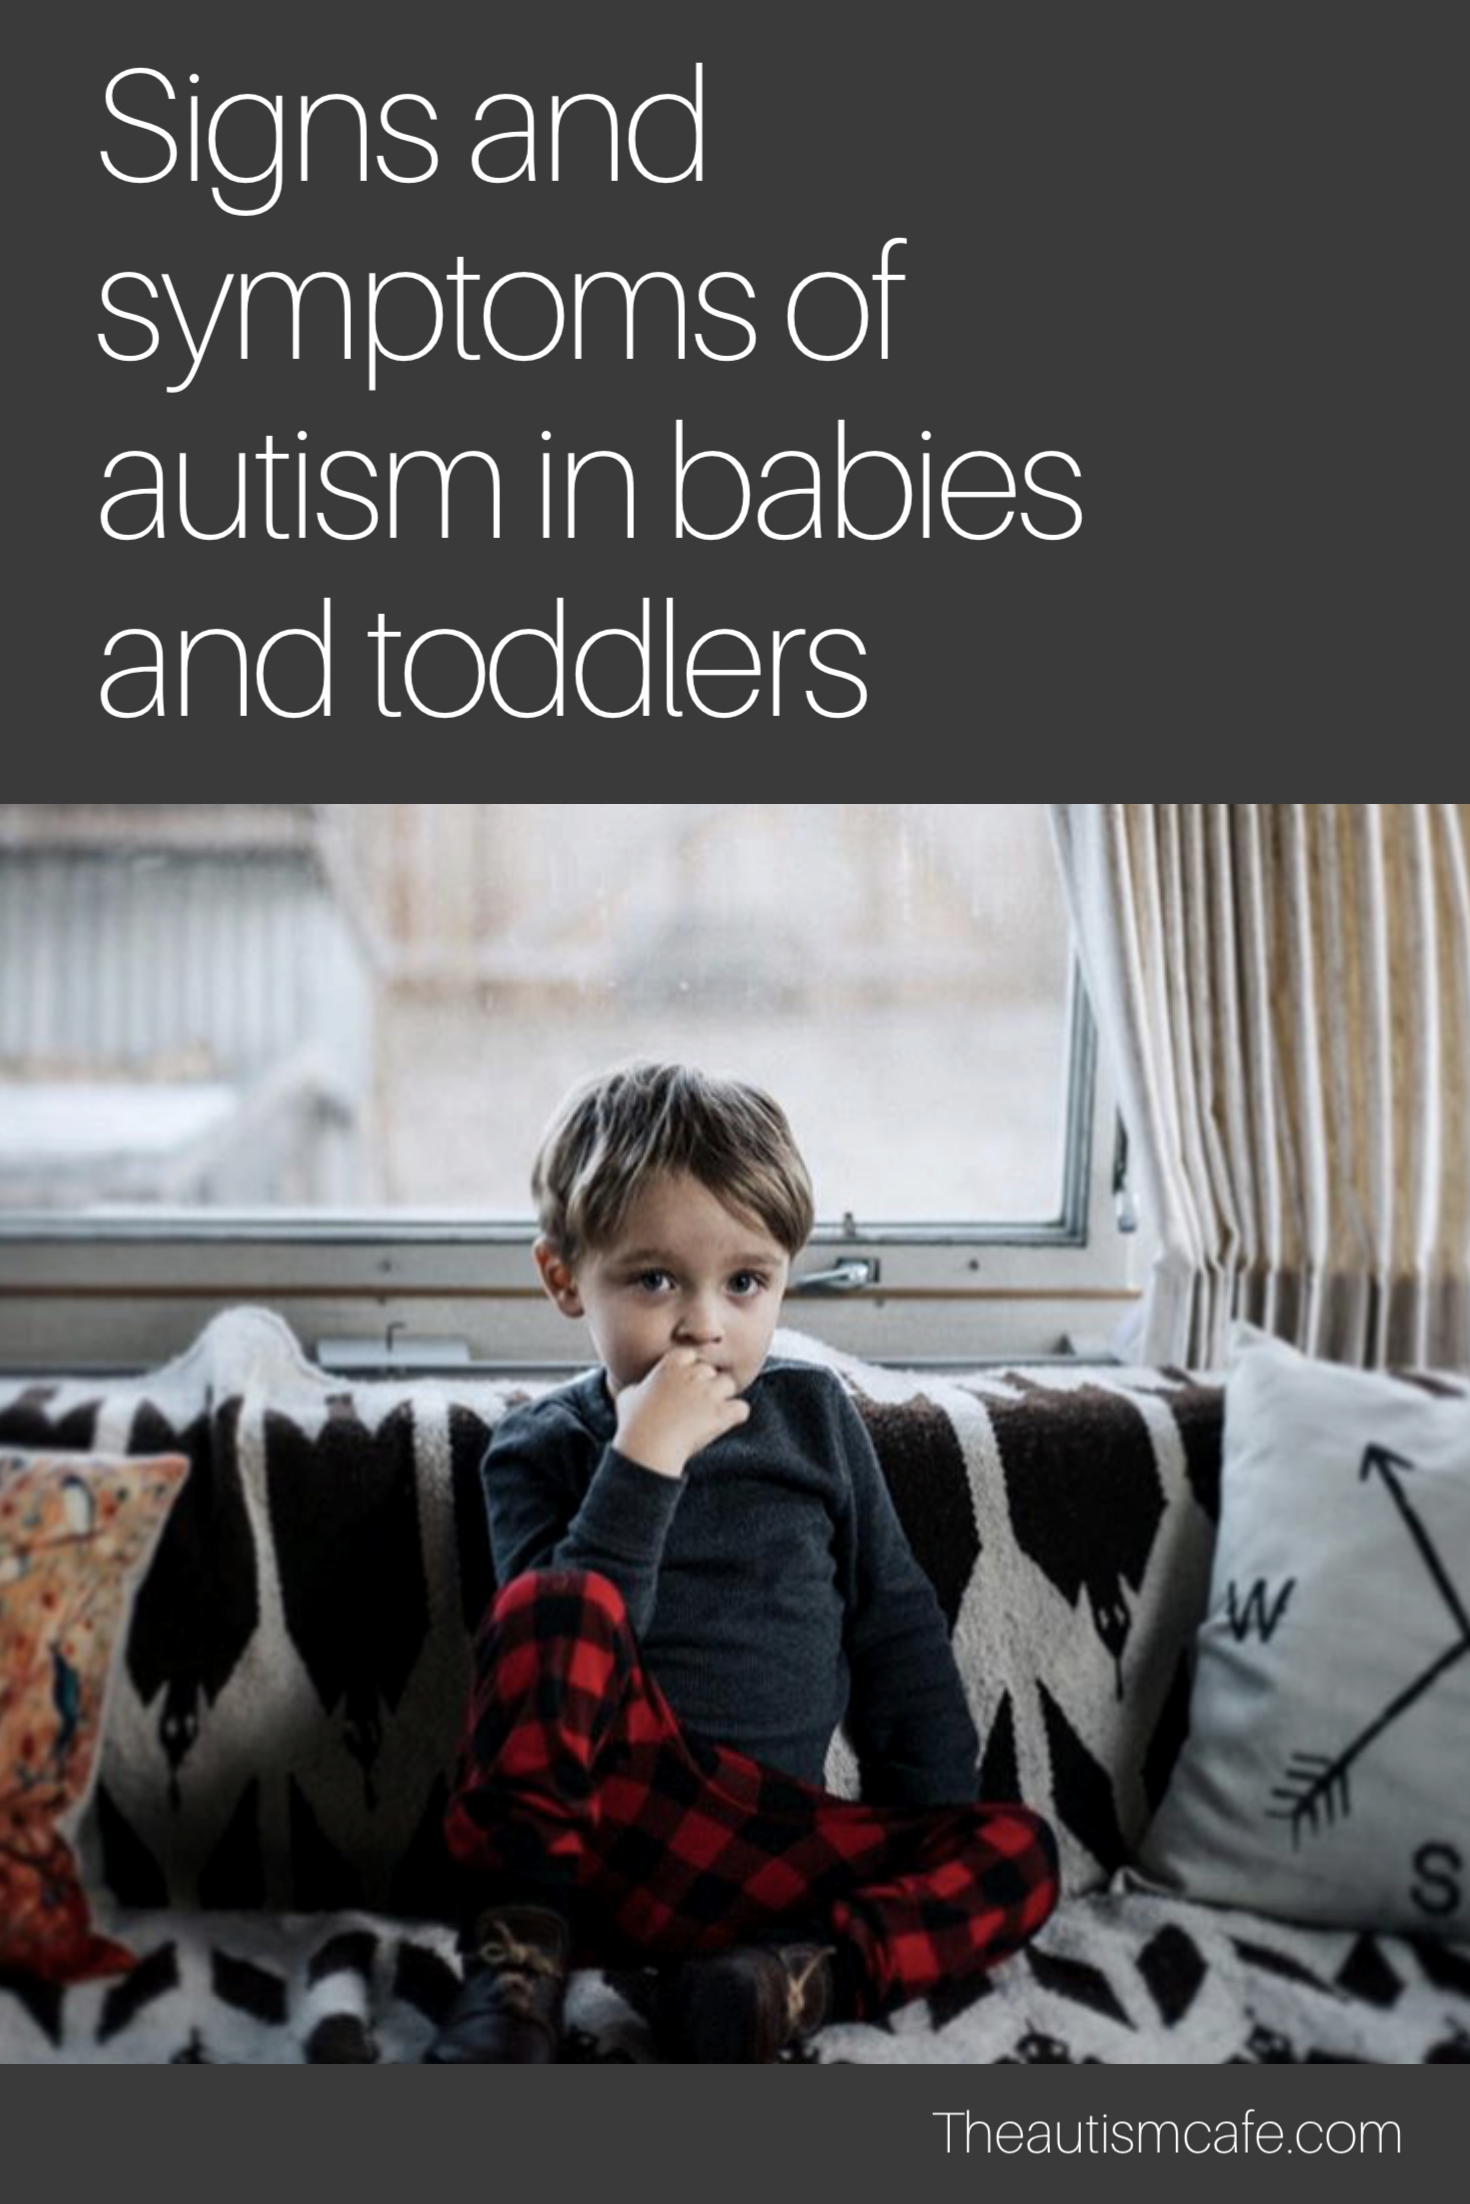 Signs and symptoms of autism in babies and toddlers Checklist